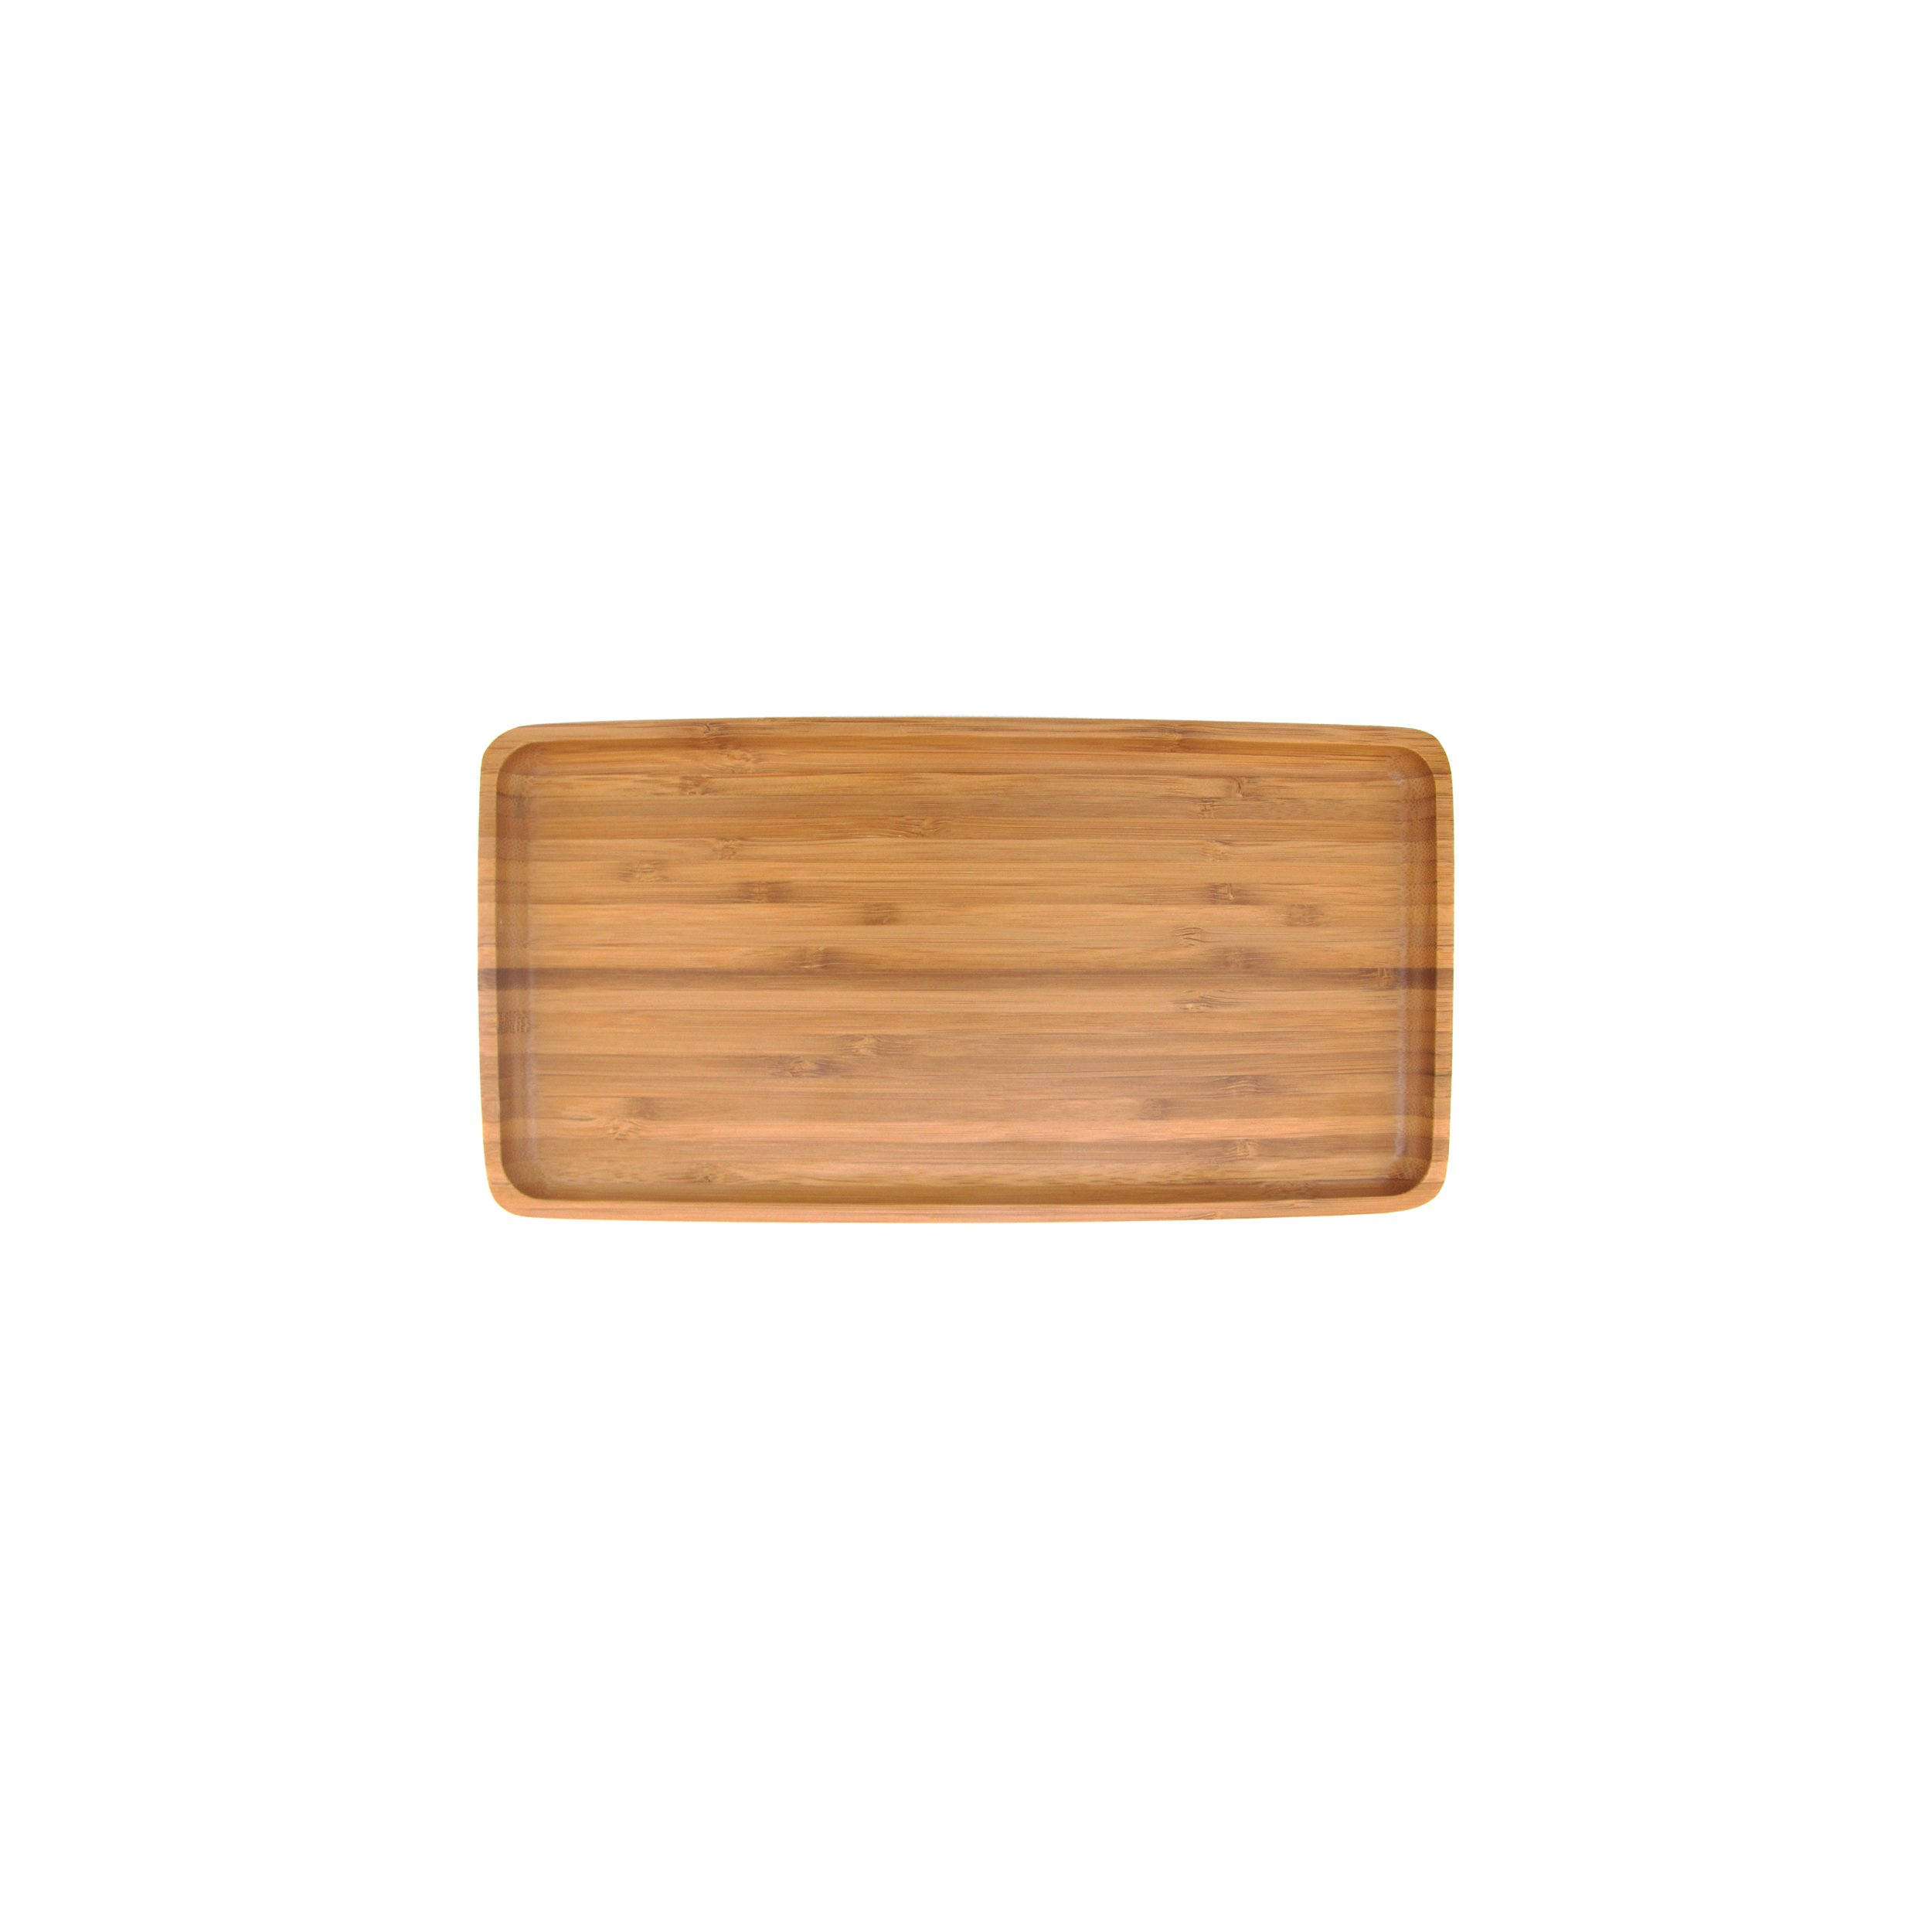 Organic Bamboo Tea Serving Tray - Rounded Edges - 11''x5.5''x0.6'' - 10 Pieces